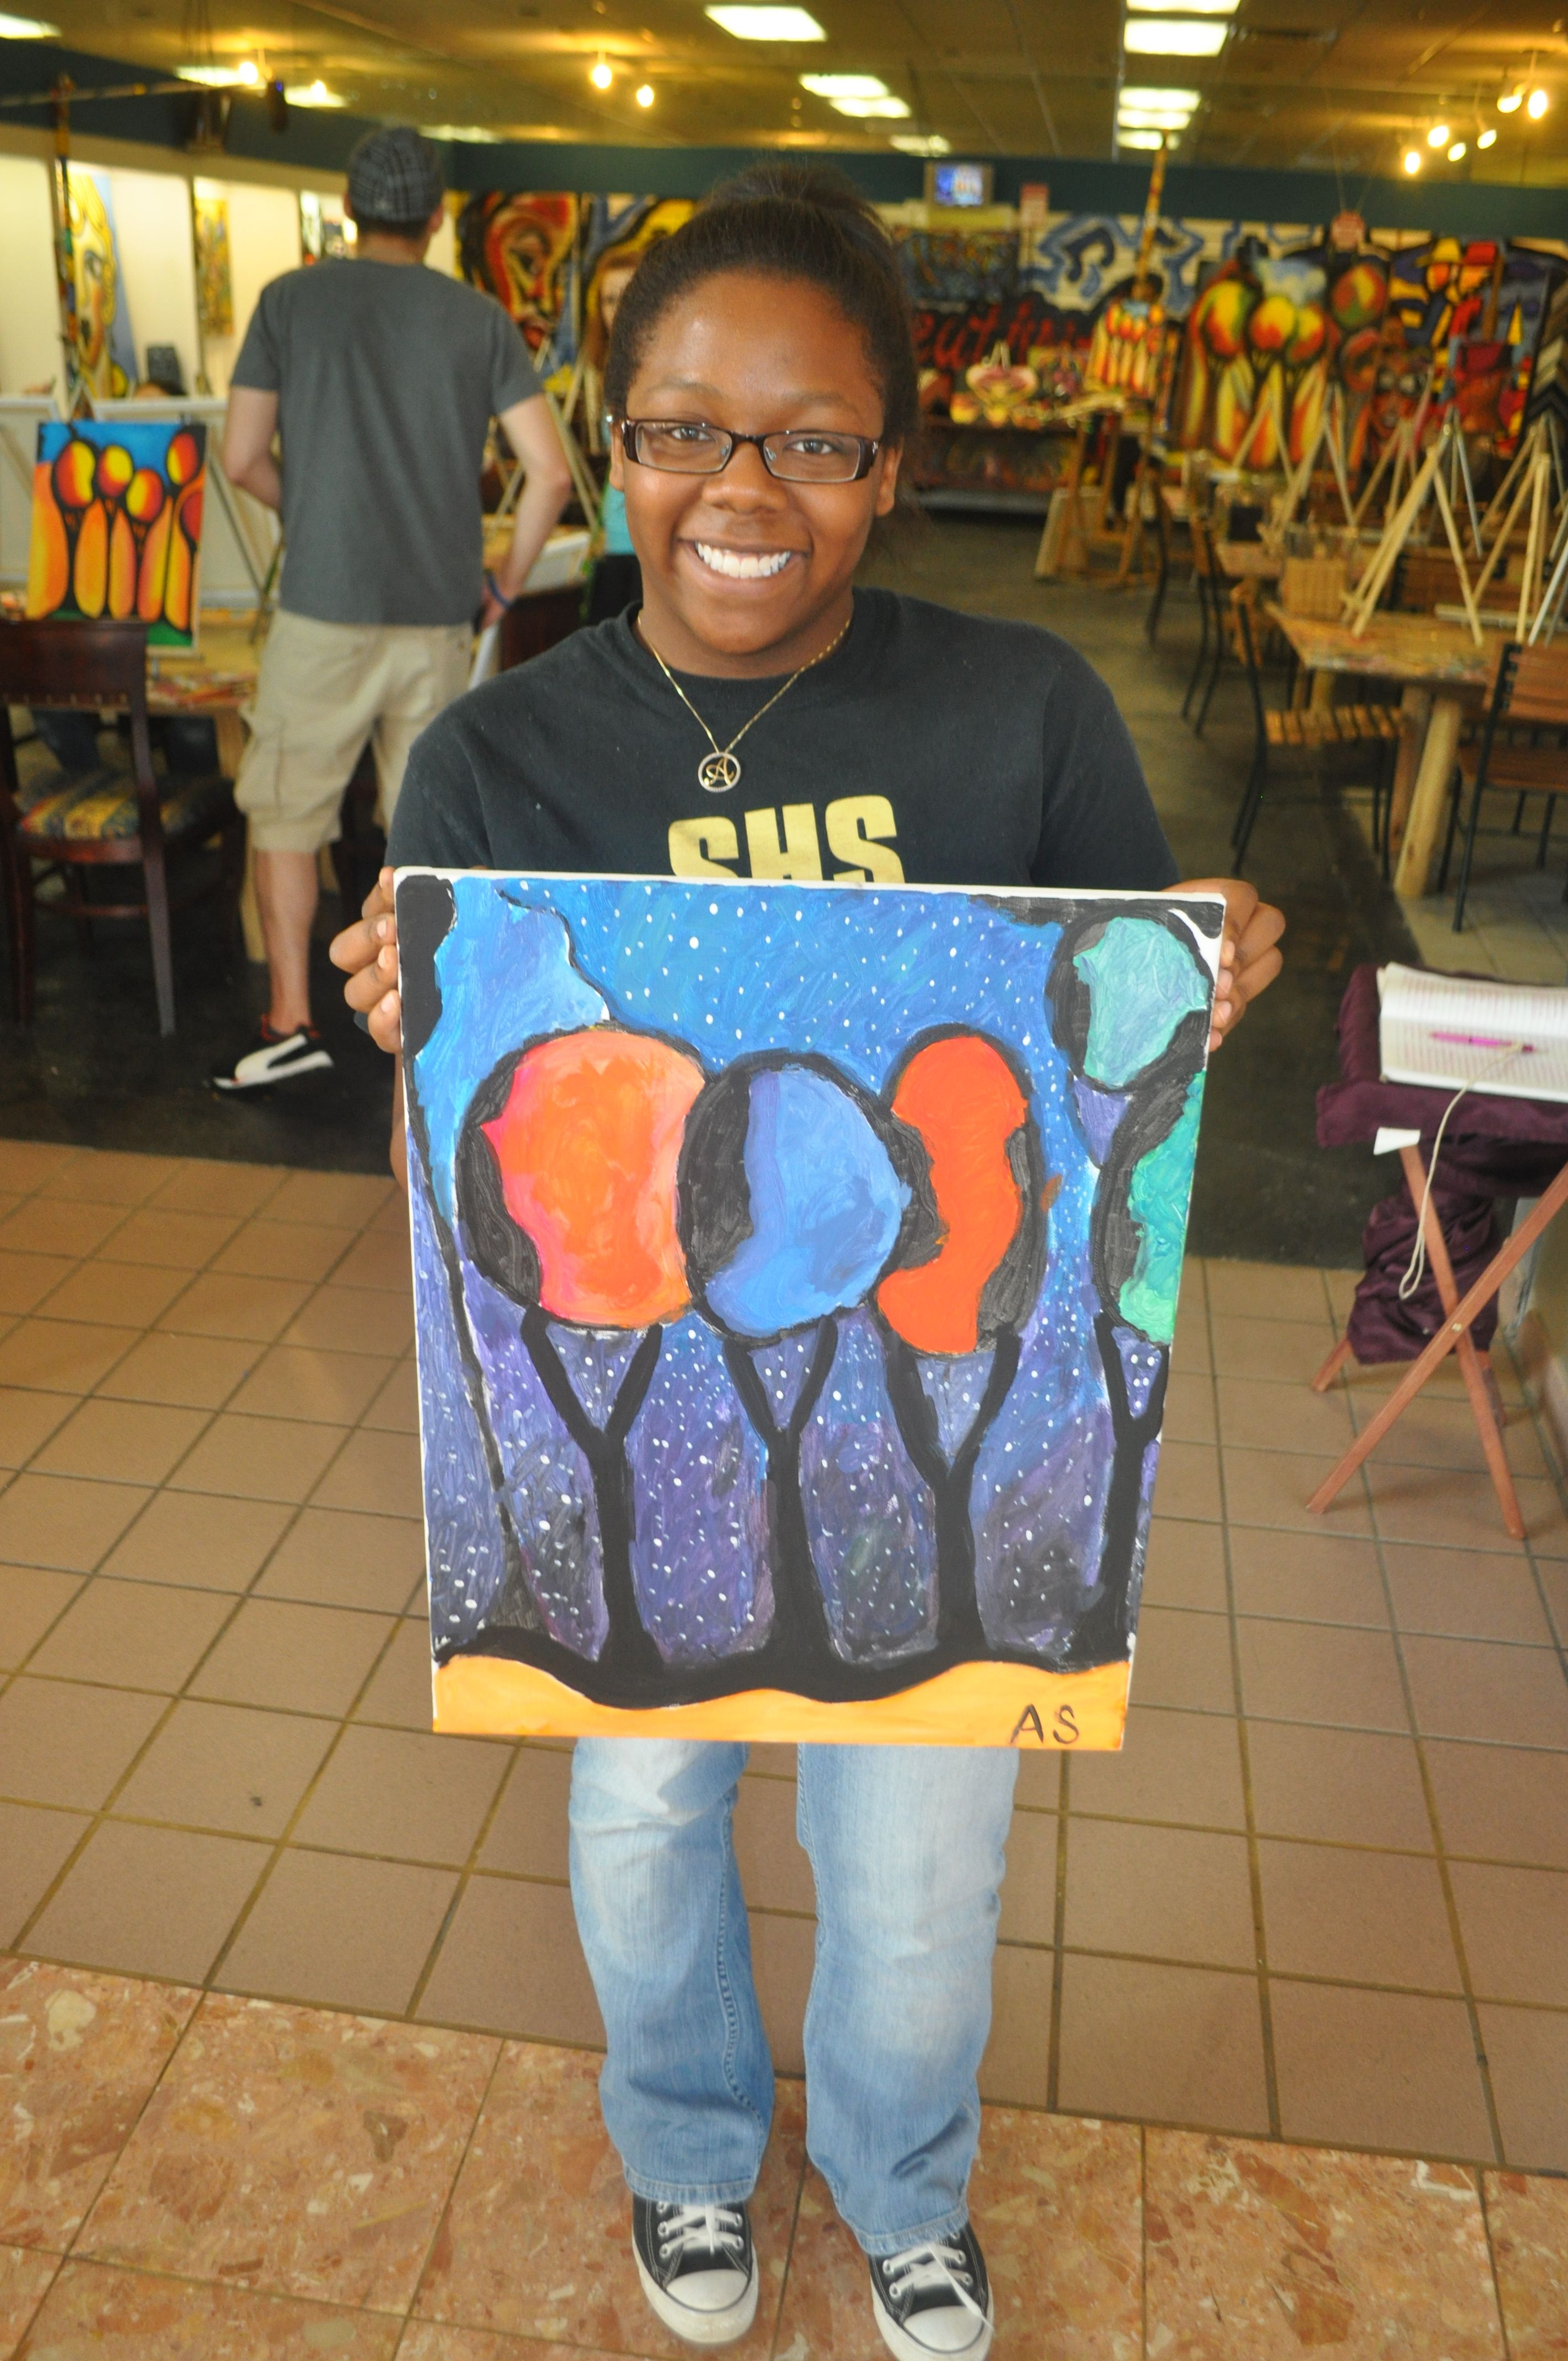 Explore your creative side with images atlanta art